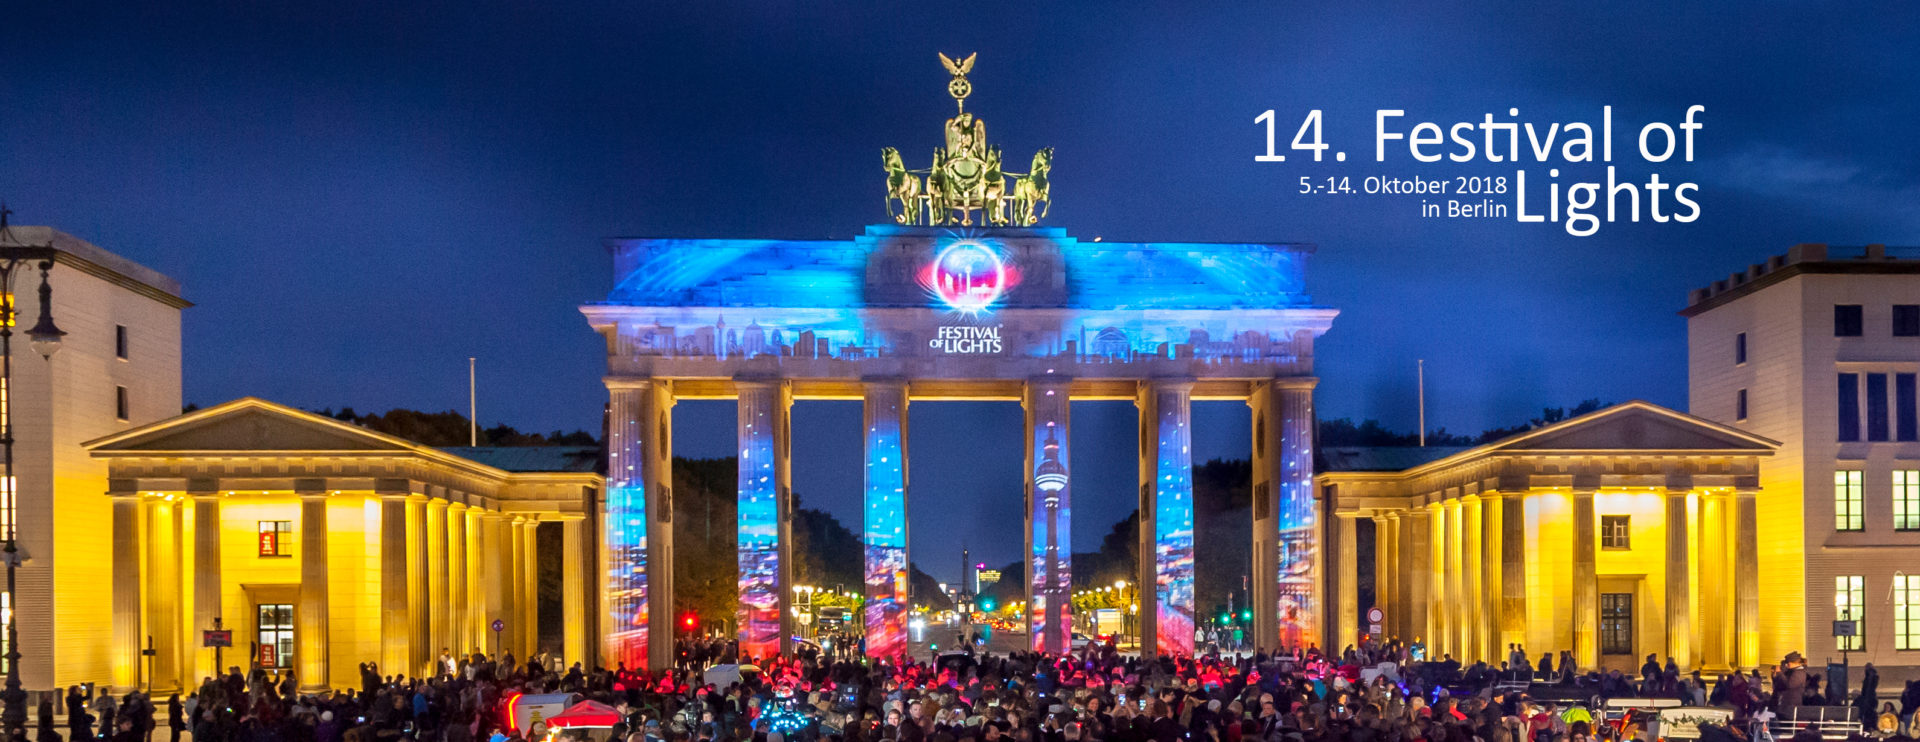 Keyvisual Brandenburger Tor 2018